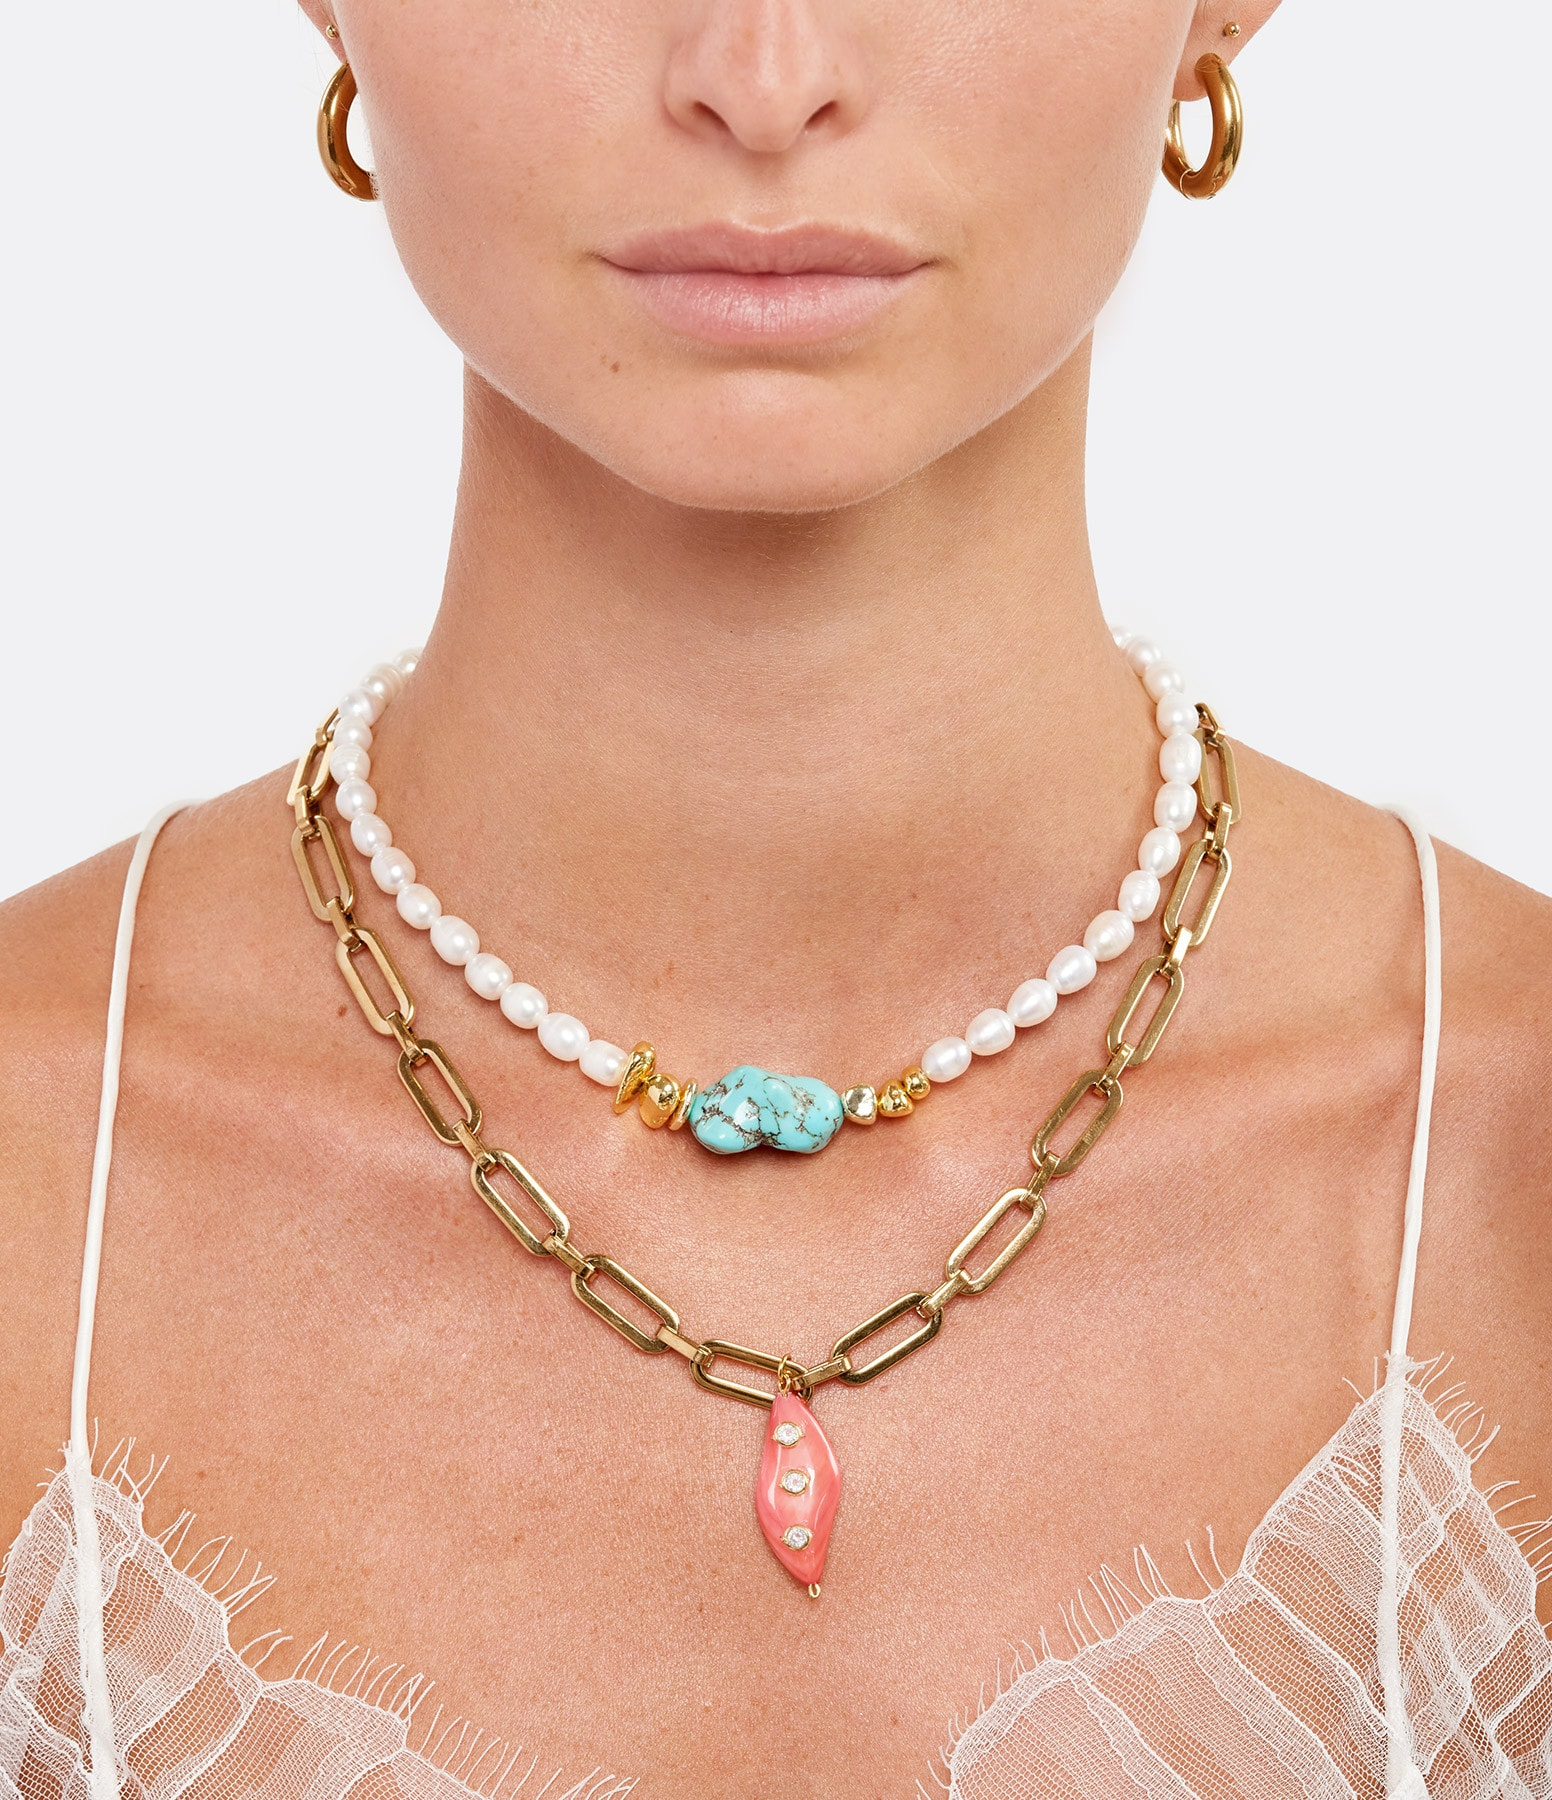 SHAKER JEWELS - Collier Plax Turquoise Perles Plaqué Or